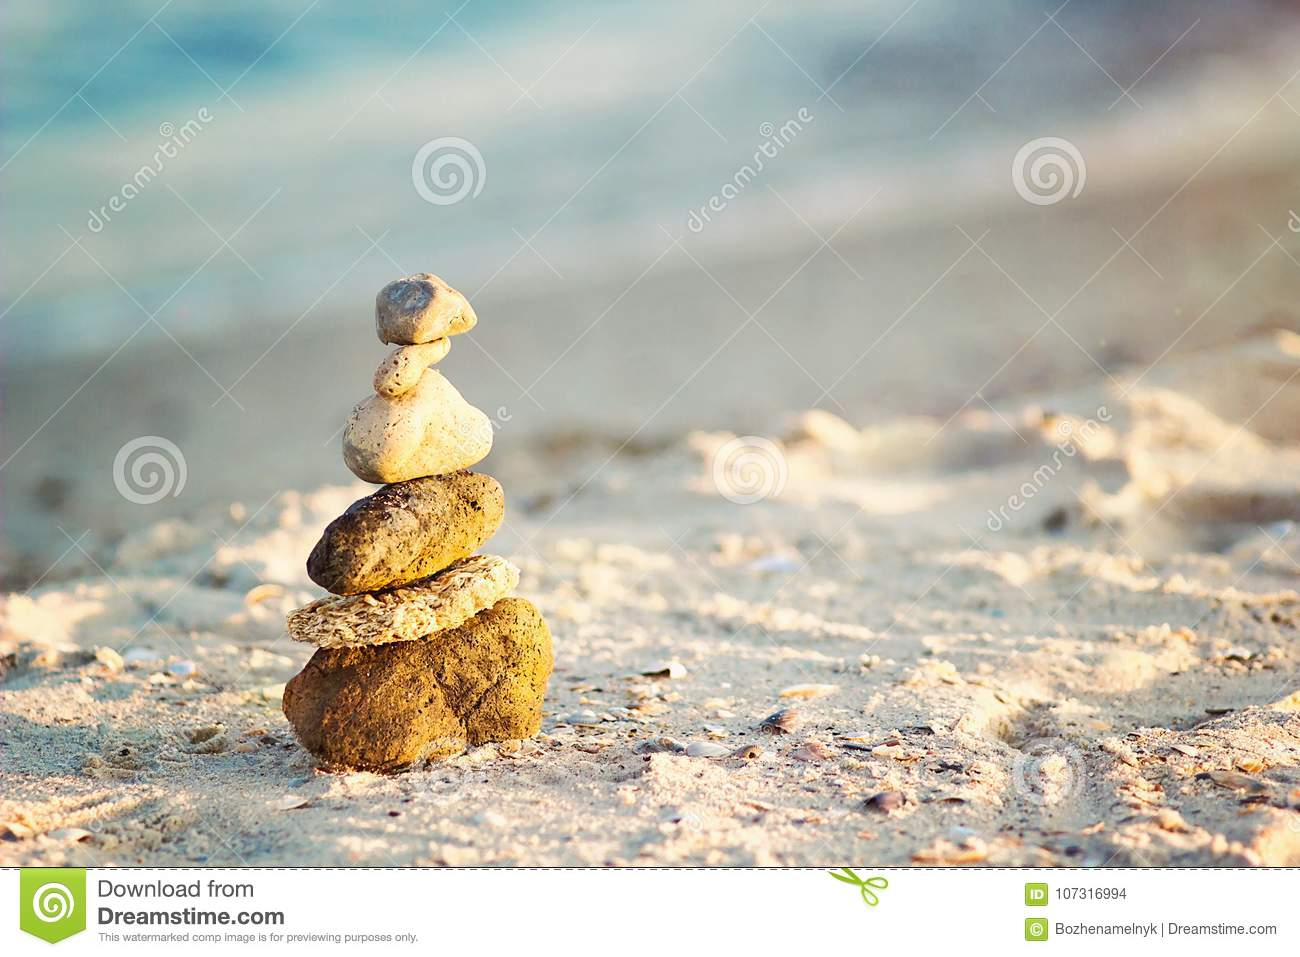 Zen Stones on beach for perfect meditation. Calm zen meditate background with rock pyramid on sand beach symbolizing stability, ha